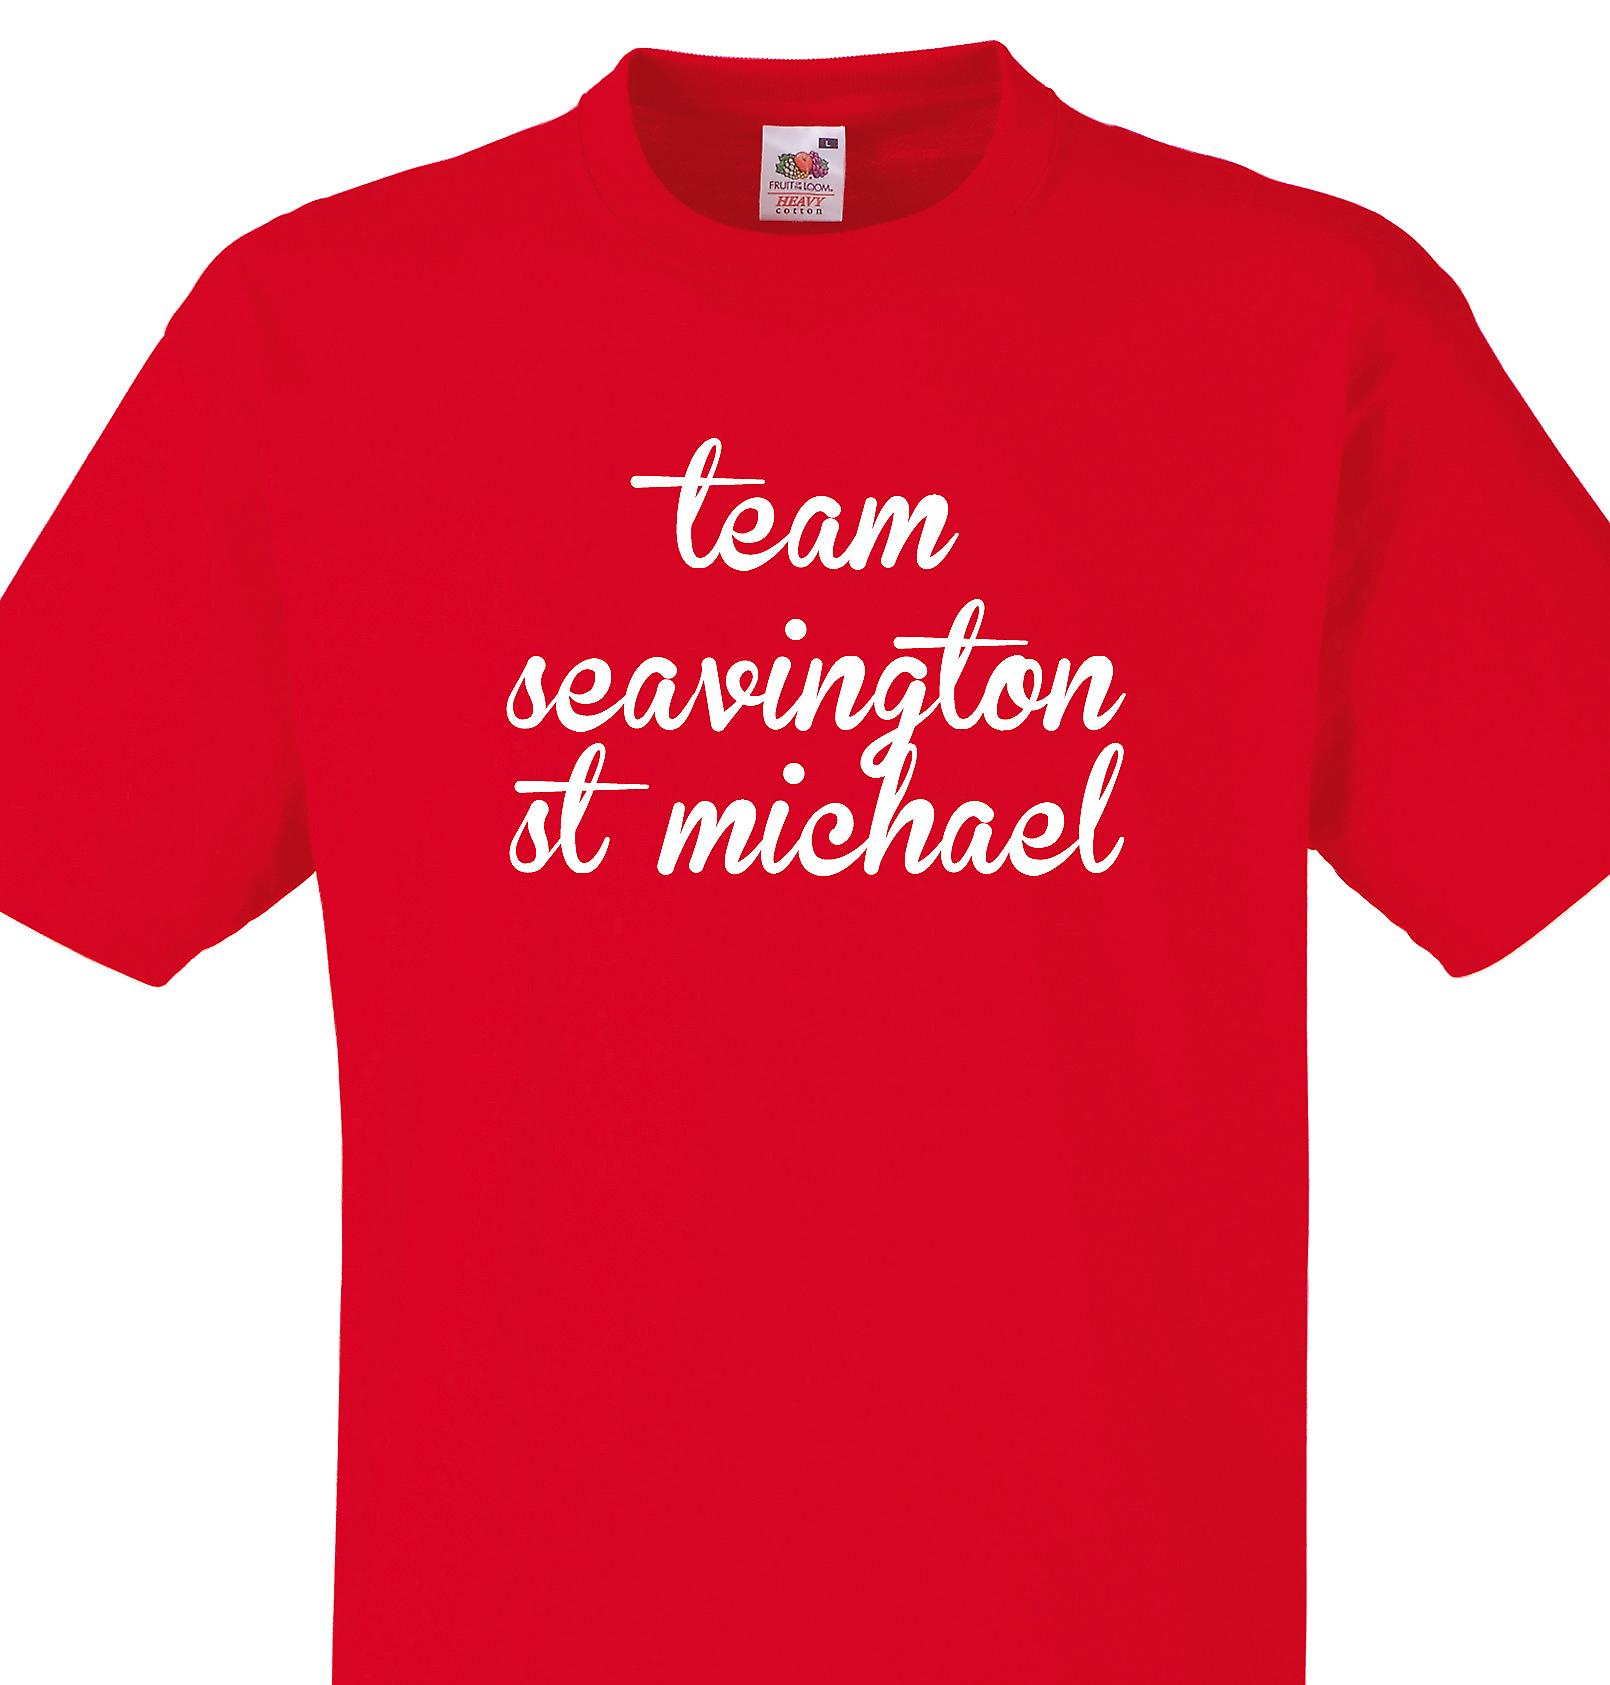 Team Seavington st michael Red T shirt